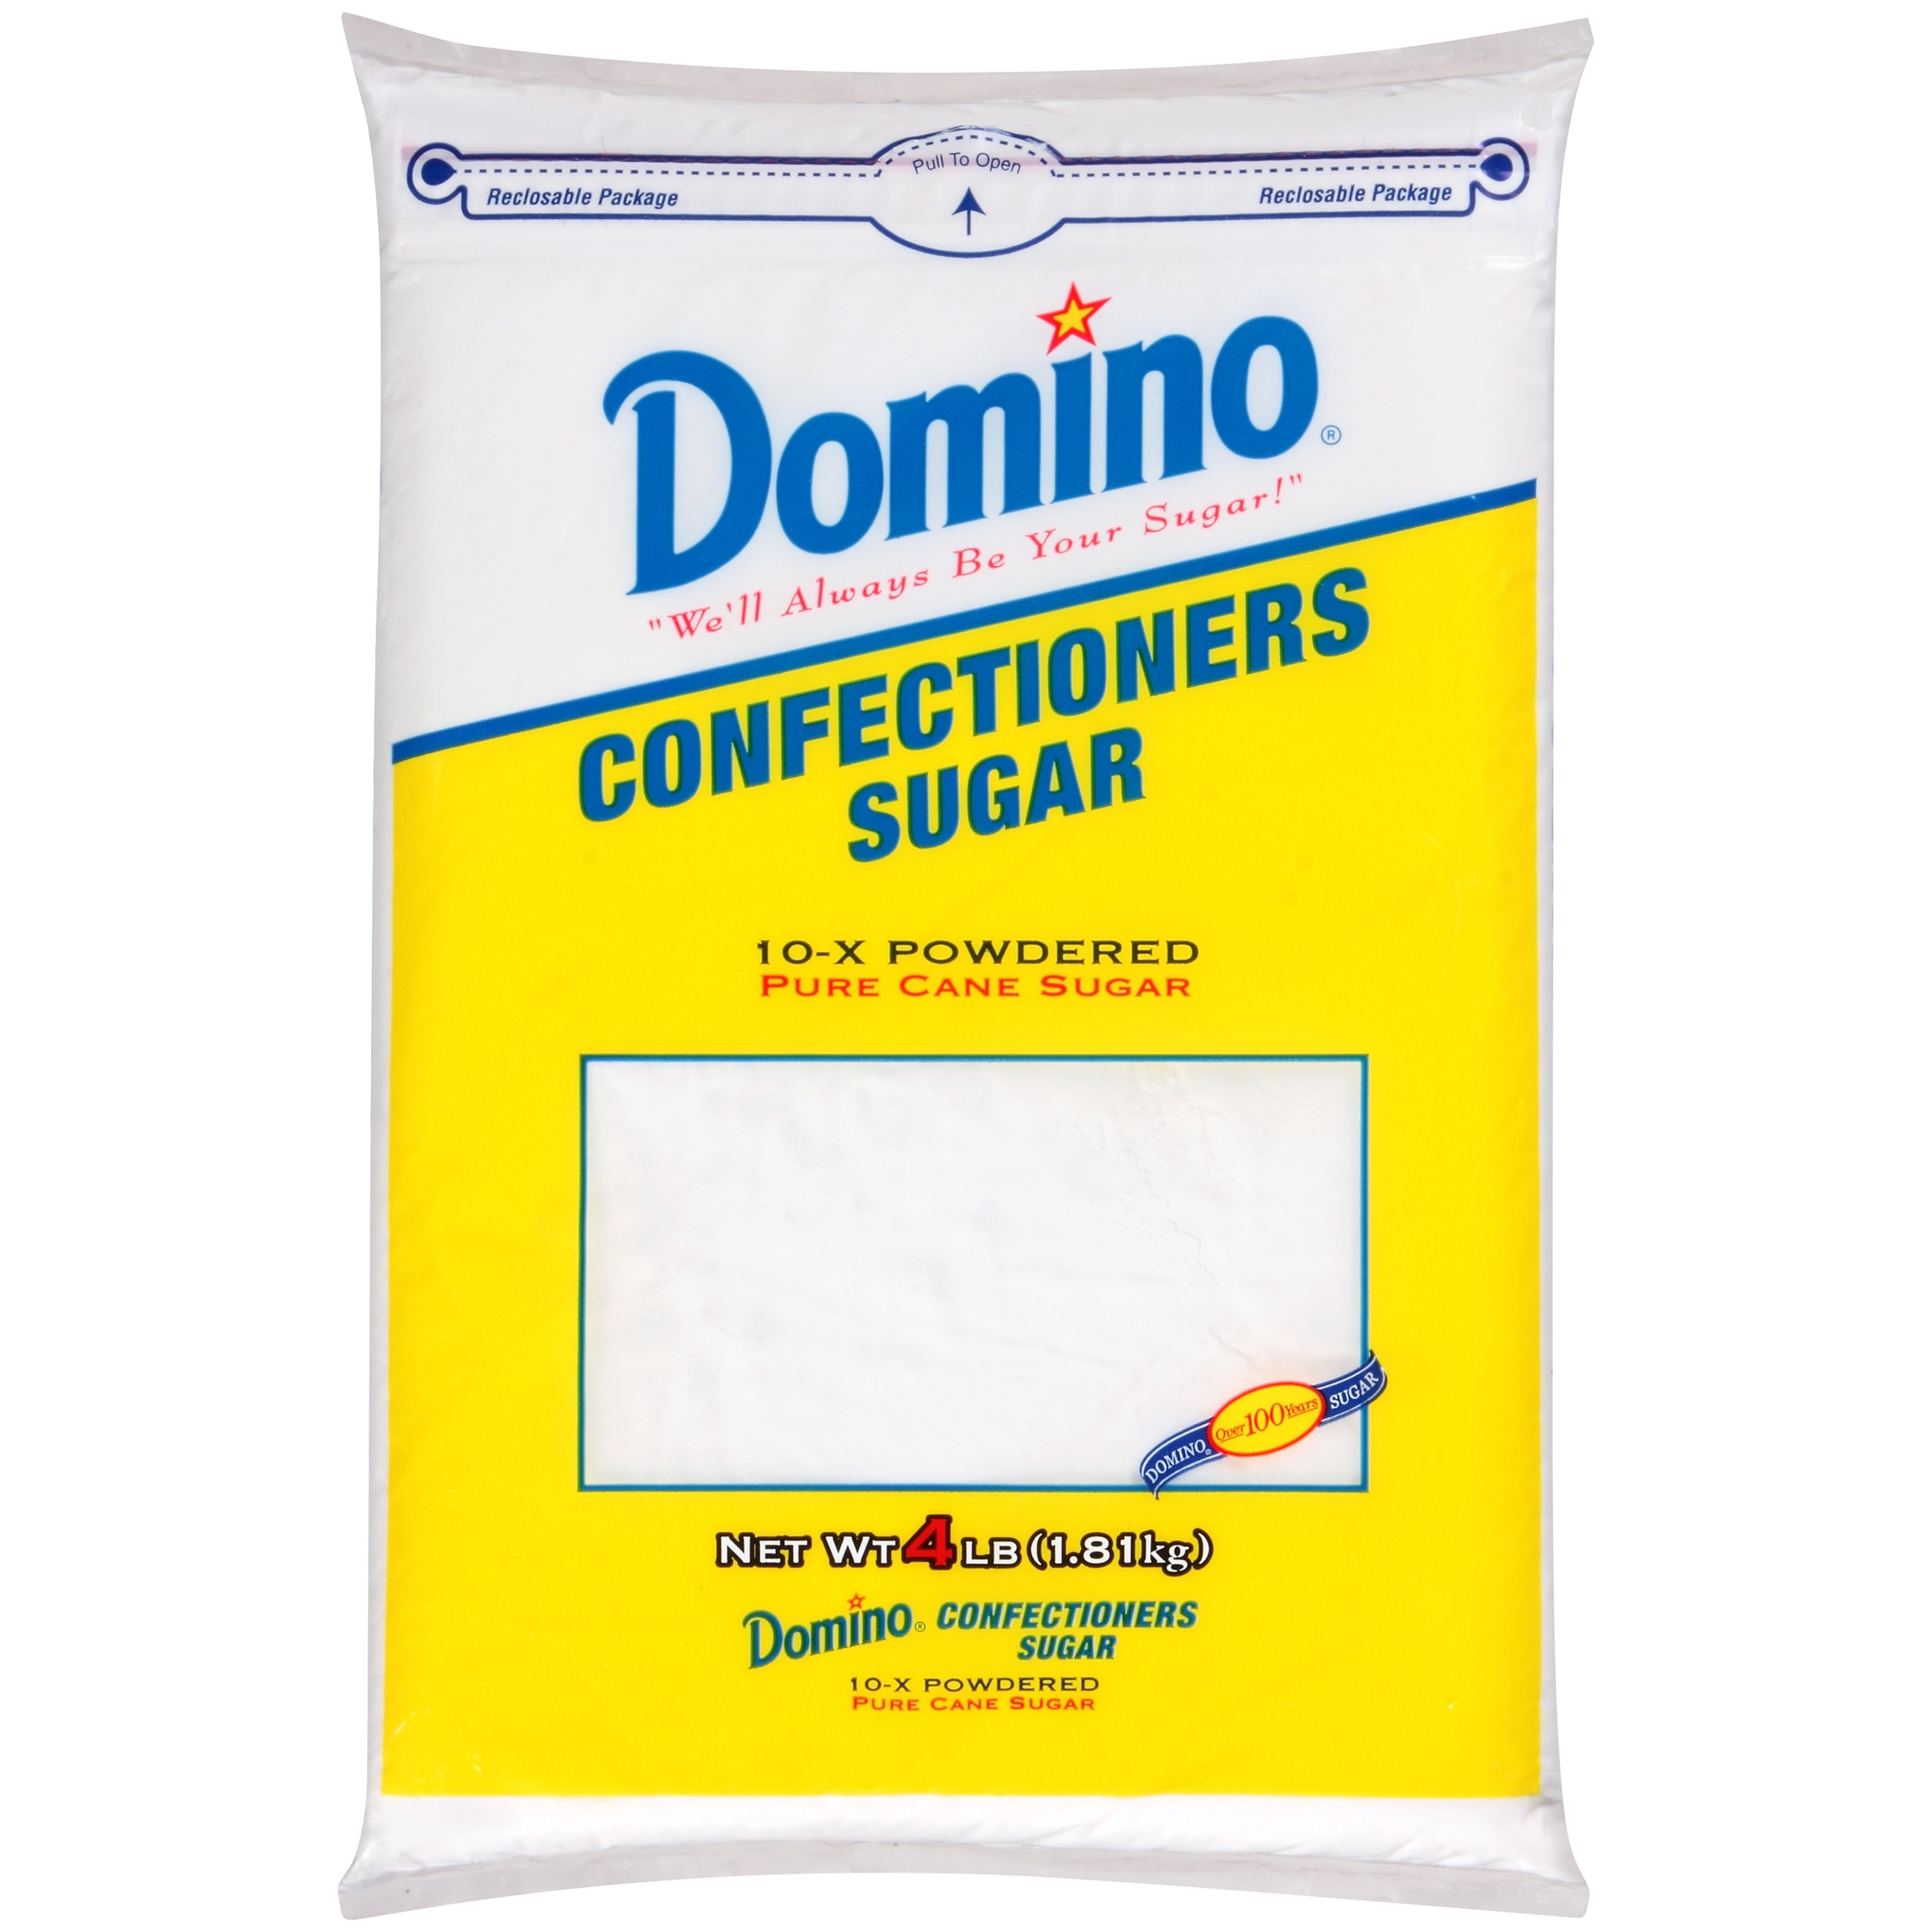 Domino Confectioners Sugar, 4 lbs